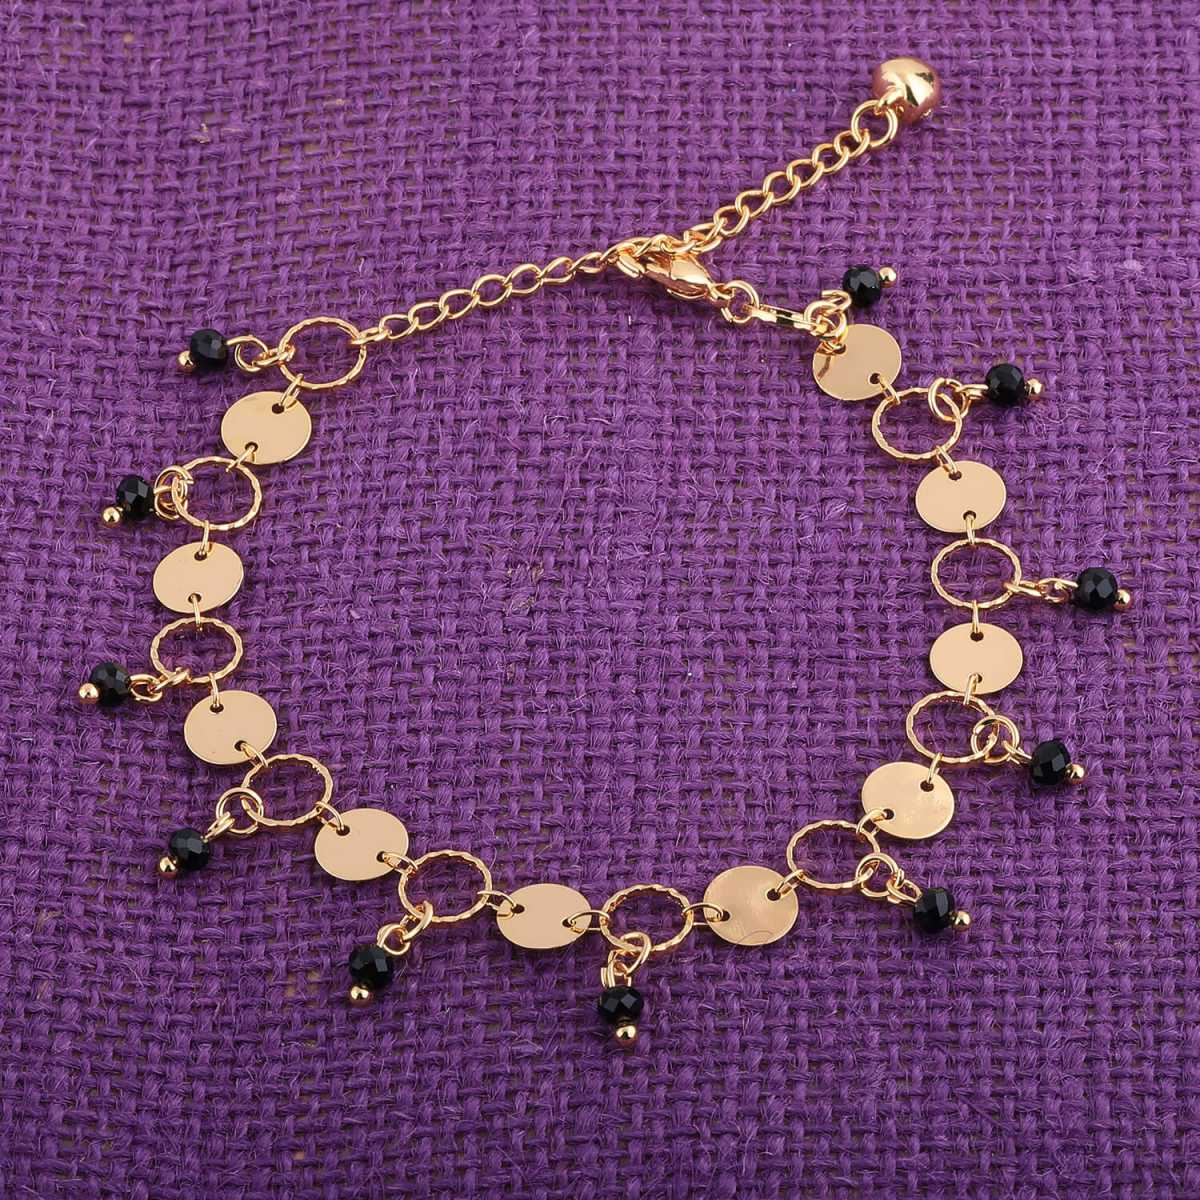 SILVER SHINE Gold Plated Adjustable  Charm Anklet For Girl Women